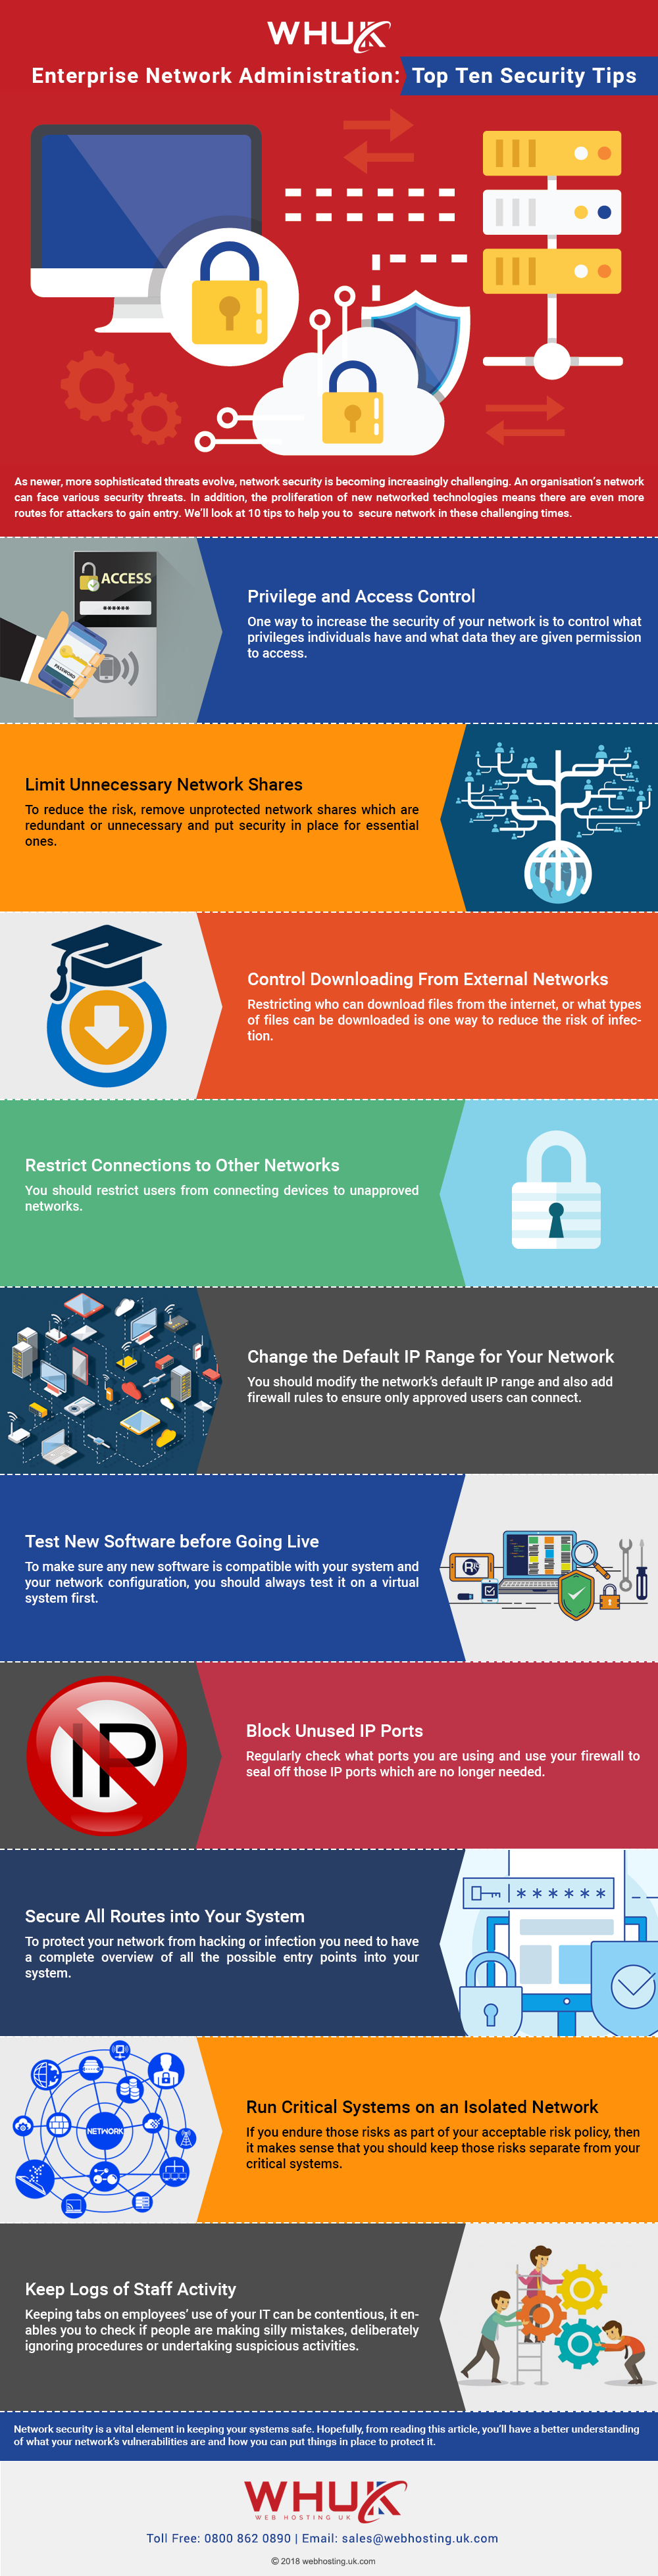 Enterprise Network Administration Top Ten Security Tips - infographic